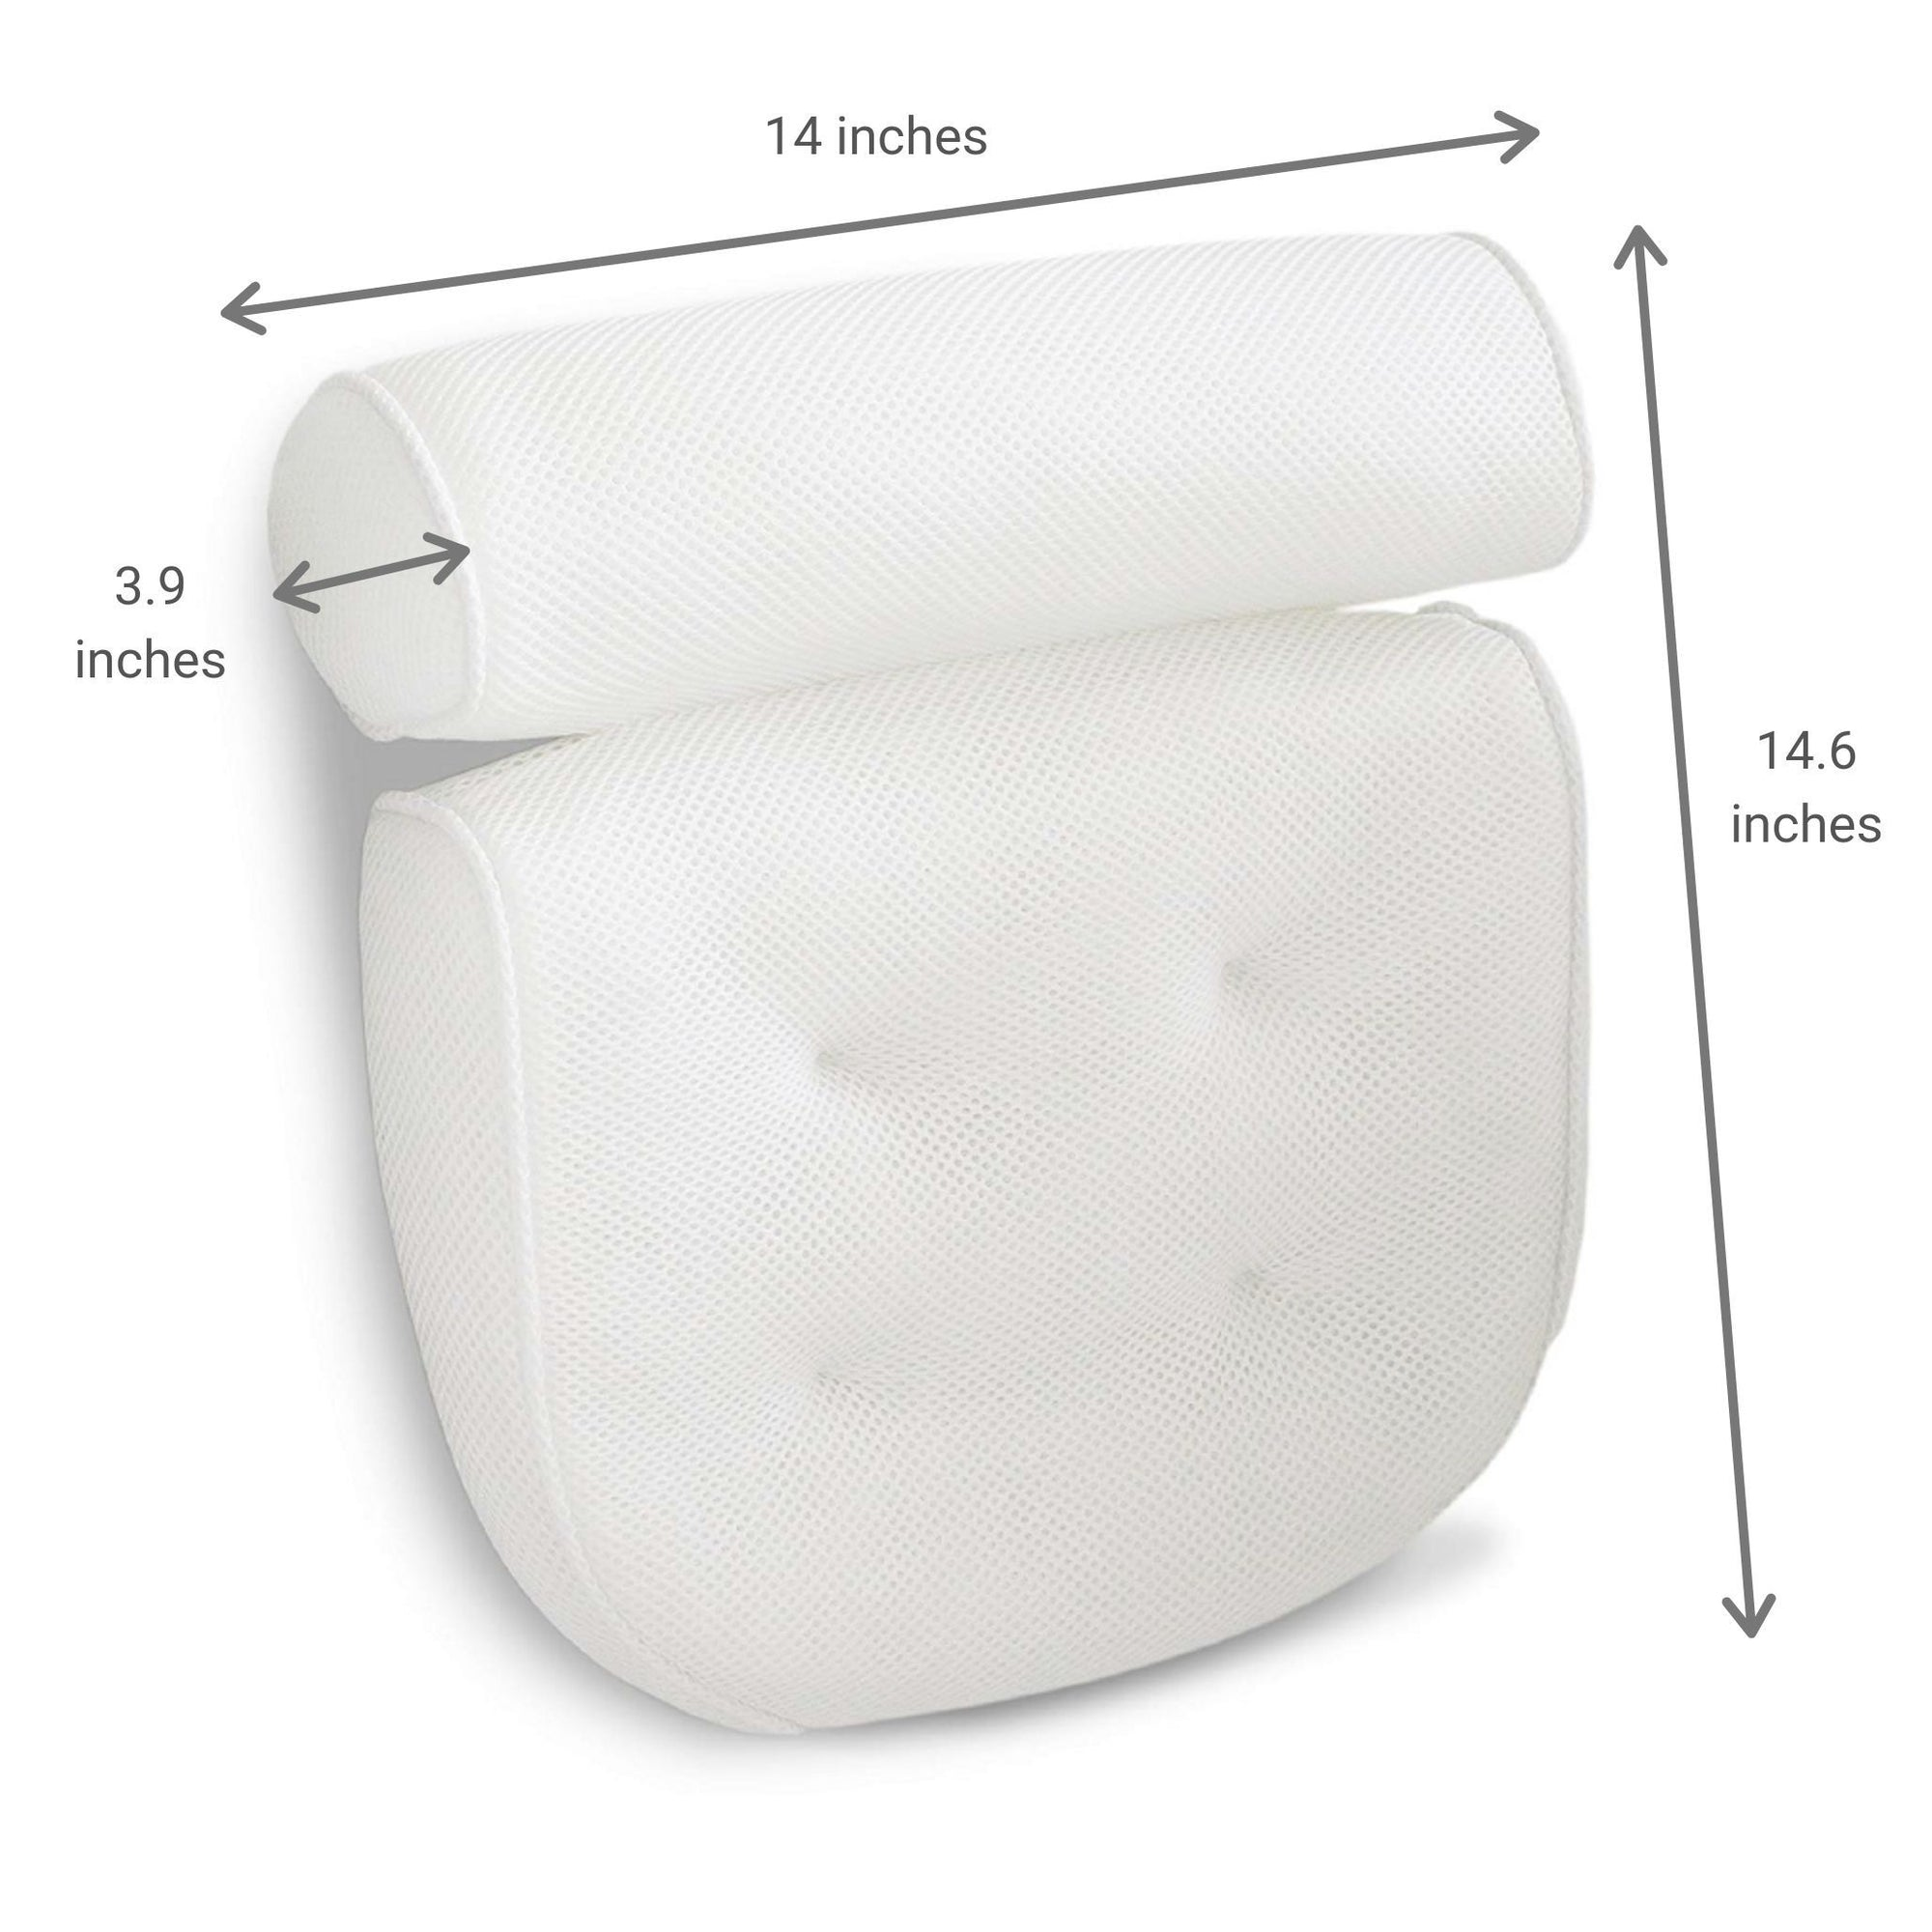 White large bathtub pillow dimensions in inches.